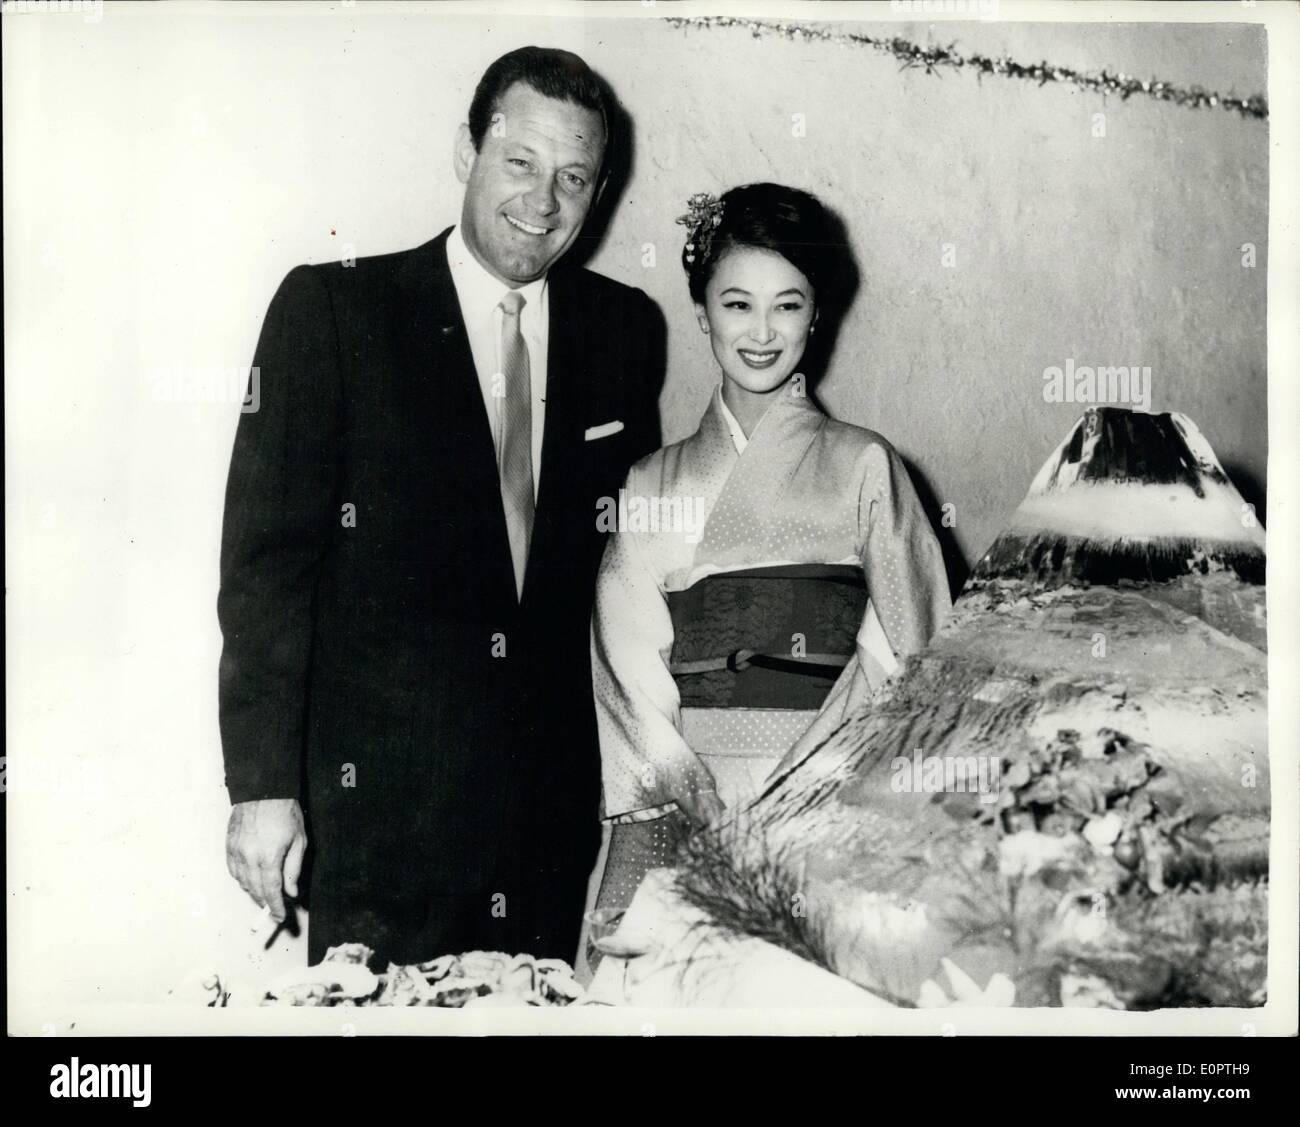 Dec. 12, 1956 - William Holden Attends Reception in Tokyo. Hollywood film star, William Holden attended a reception given in his honour at the Foreign Correspondents Club in Tokyo recently. He was enroute to Colombo, Ceylon, to play a major role in Columbia Films ''The Bridge on the River Kwai'', which will be filmed entirely in Ceylon. He is seen here with the lovely Japanese film star Keiko Kishi, who was the winner of the best actress award at the Asian Film Festival in Singapore, for her performance in ''The Refugee'' - Stock Image